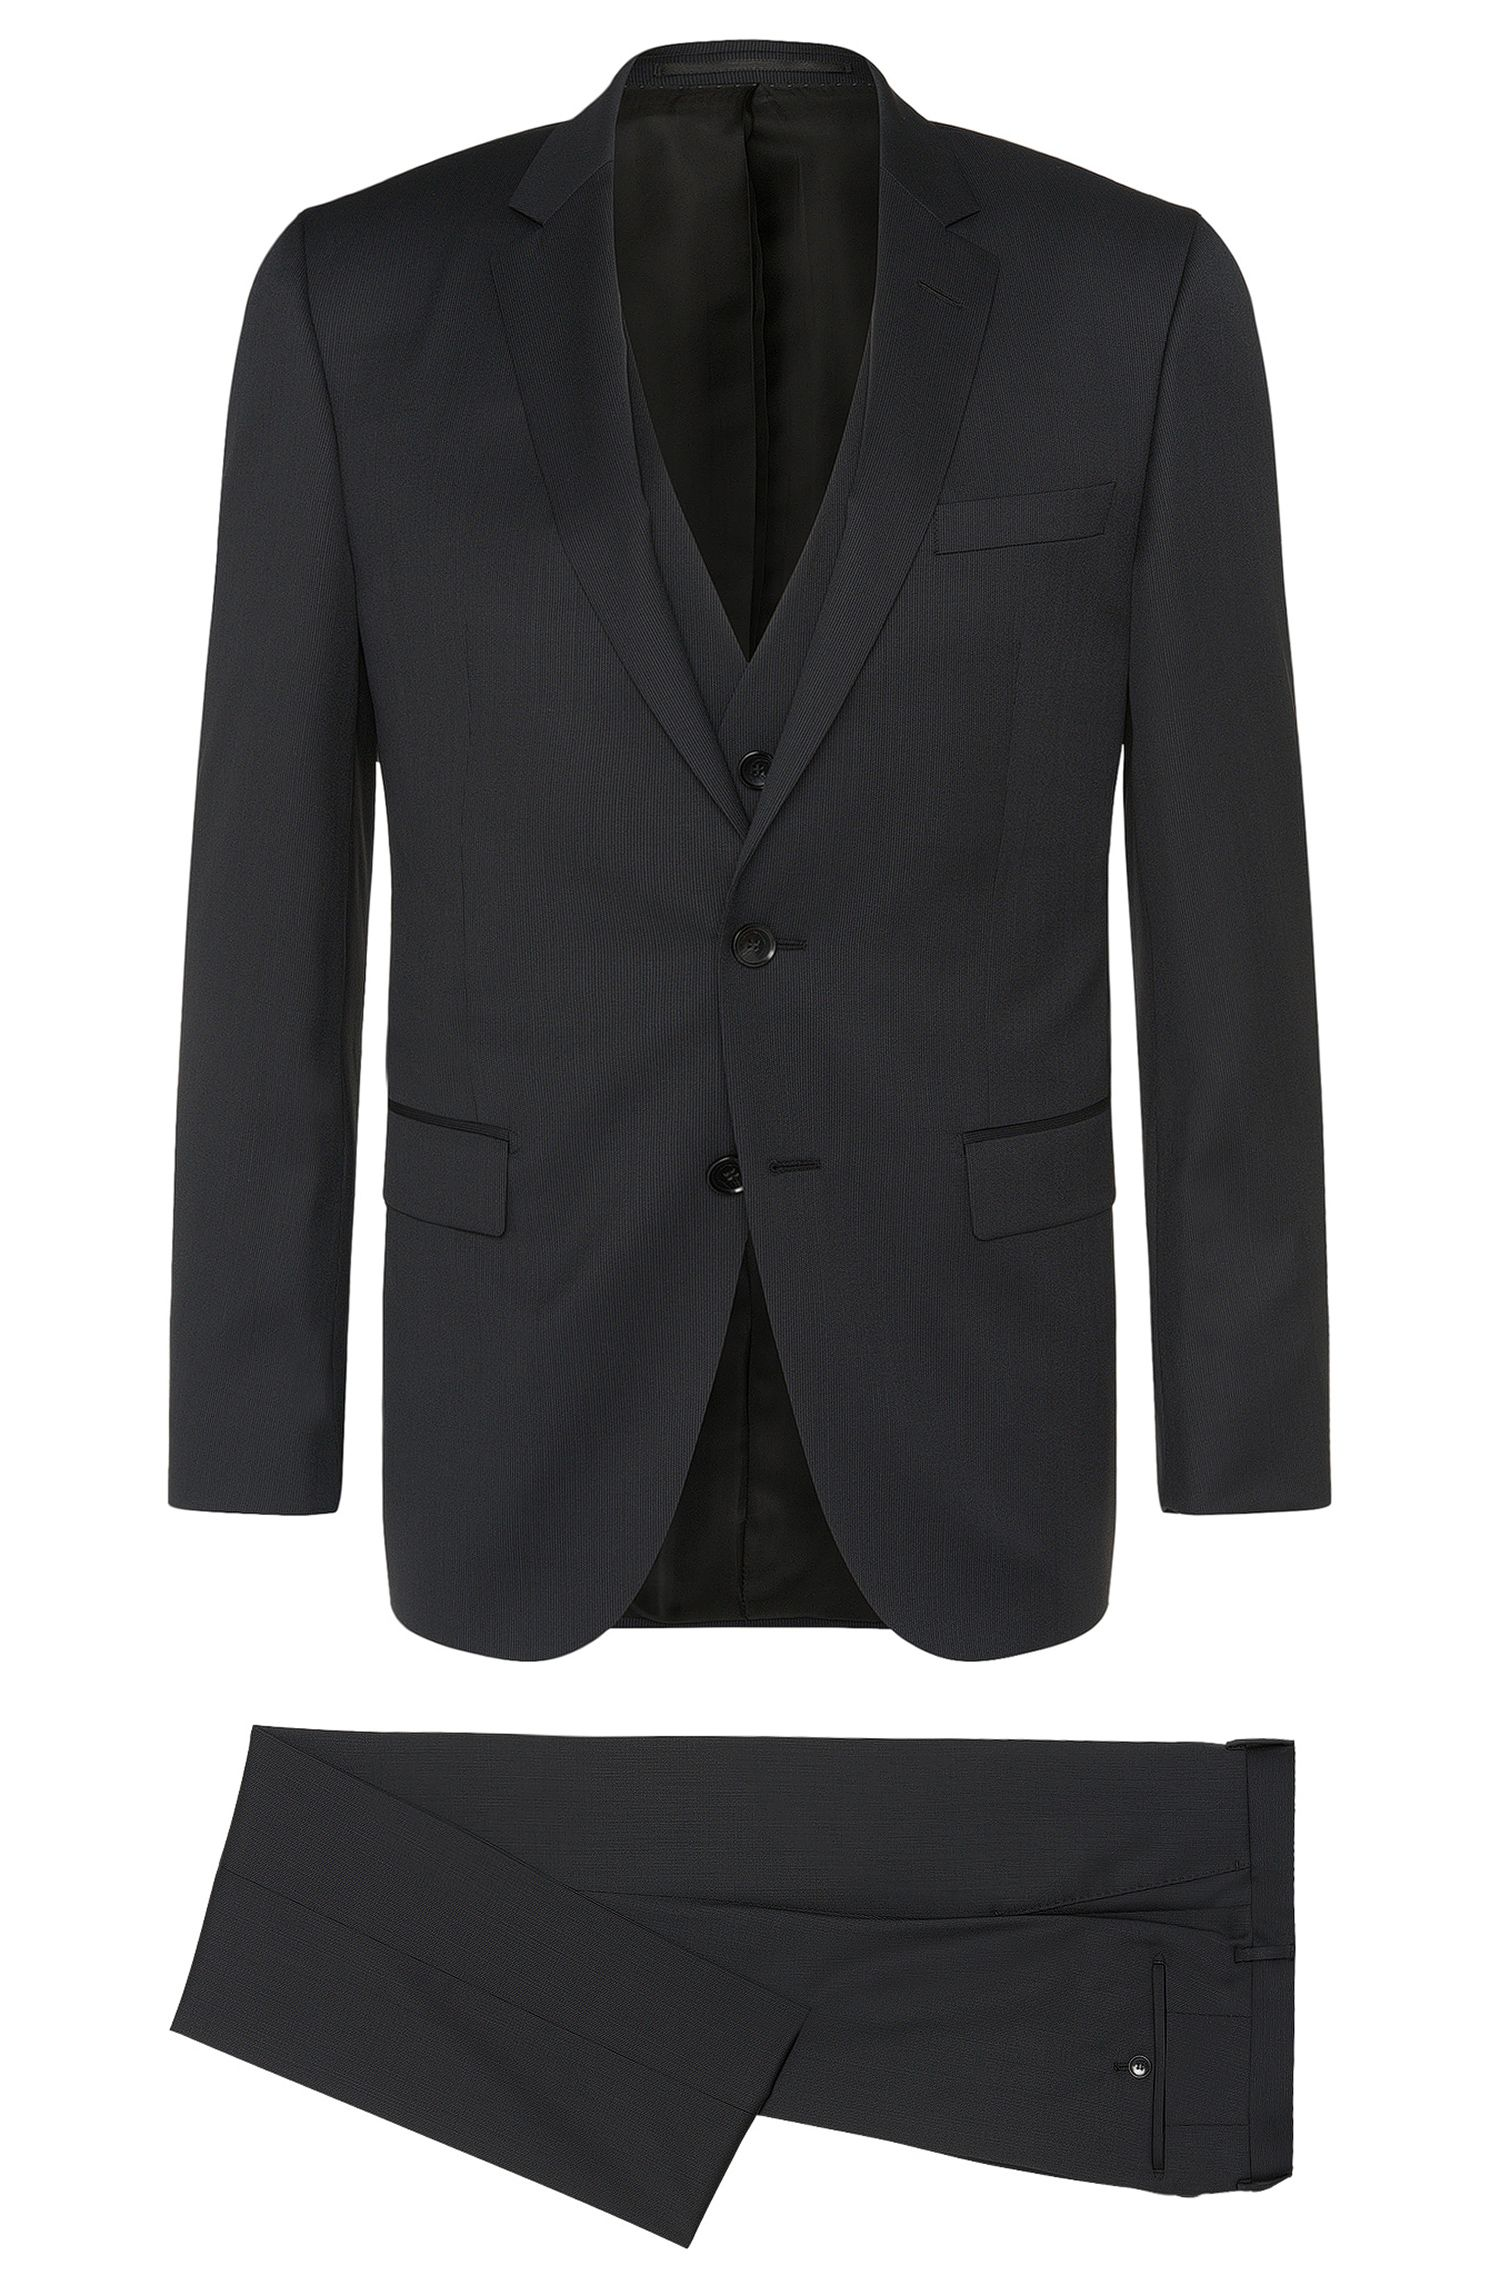 Gestreifter Slim-Fit Tailored Anzug mit Weste aus reiner Schurwolle: 'T-Harvers2Glover1WE2'